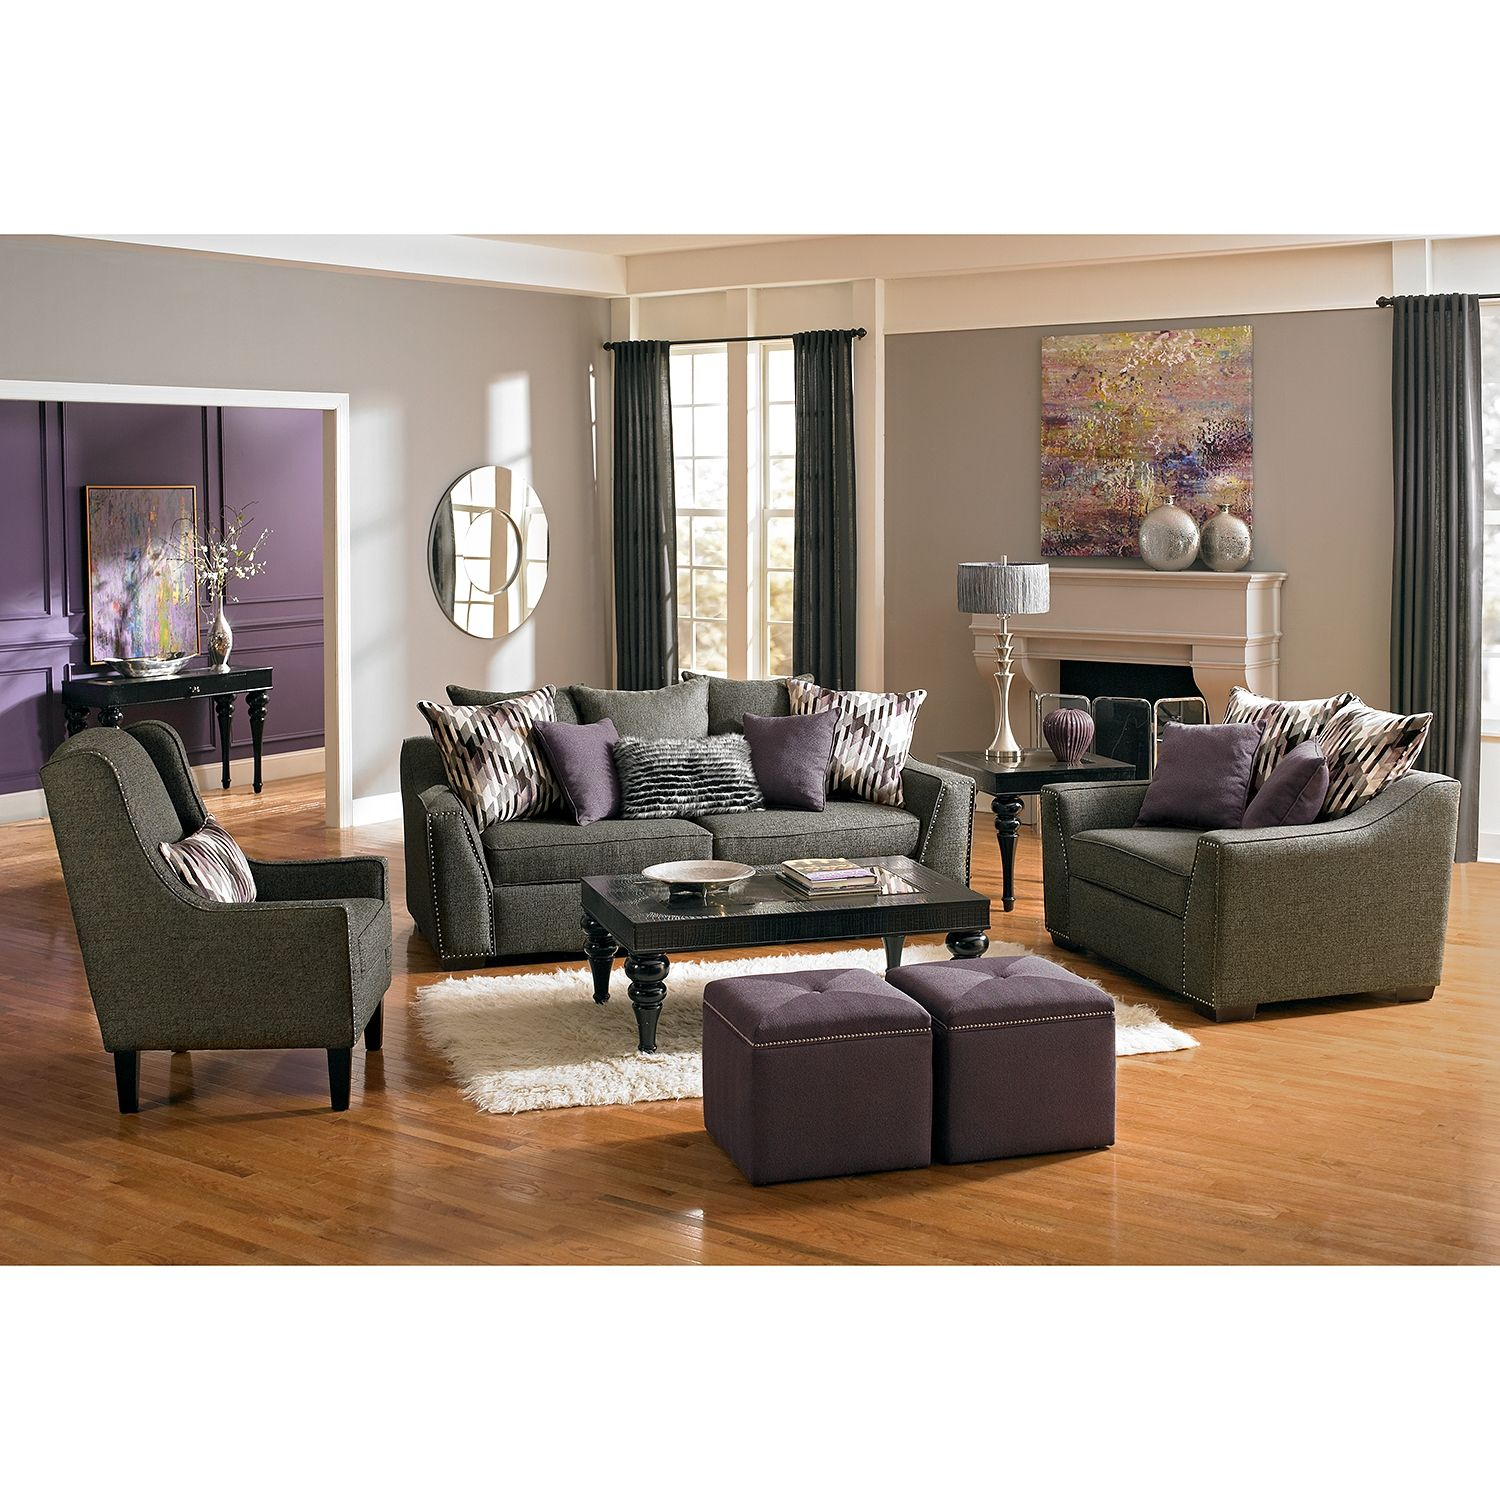 Living Room Chair And A Half The Suite Life From Its Generous Size To Its Posh Accents Our